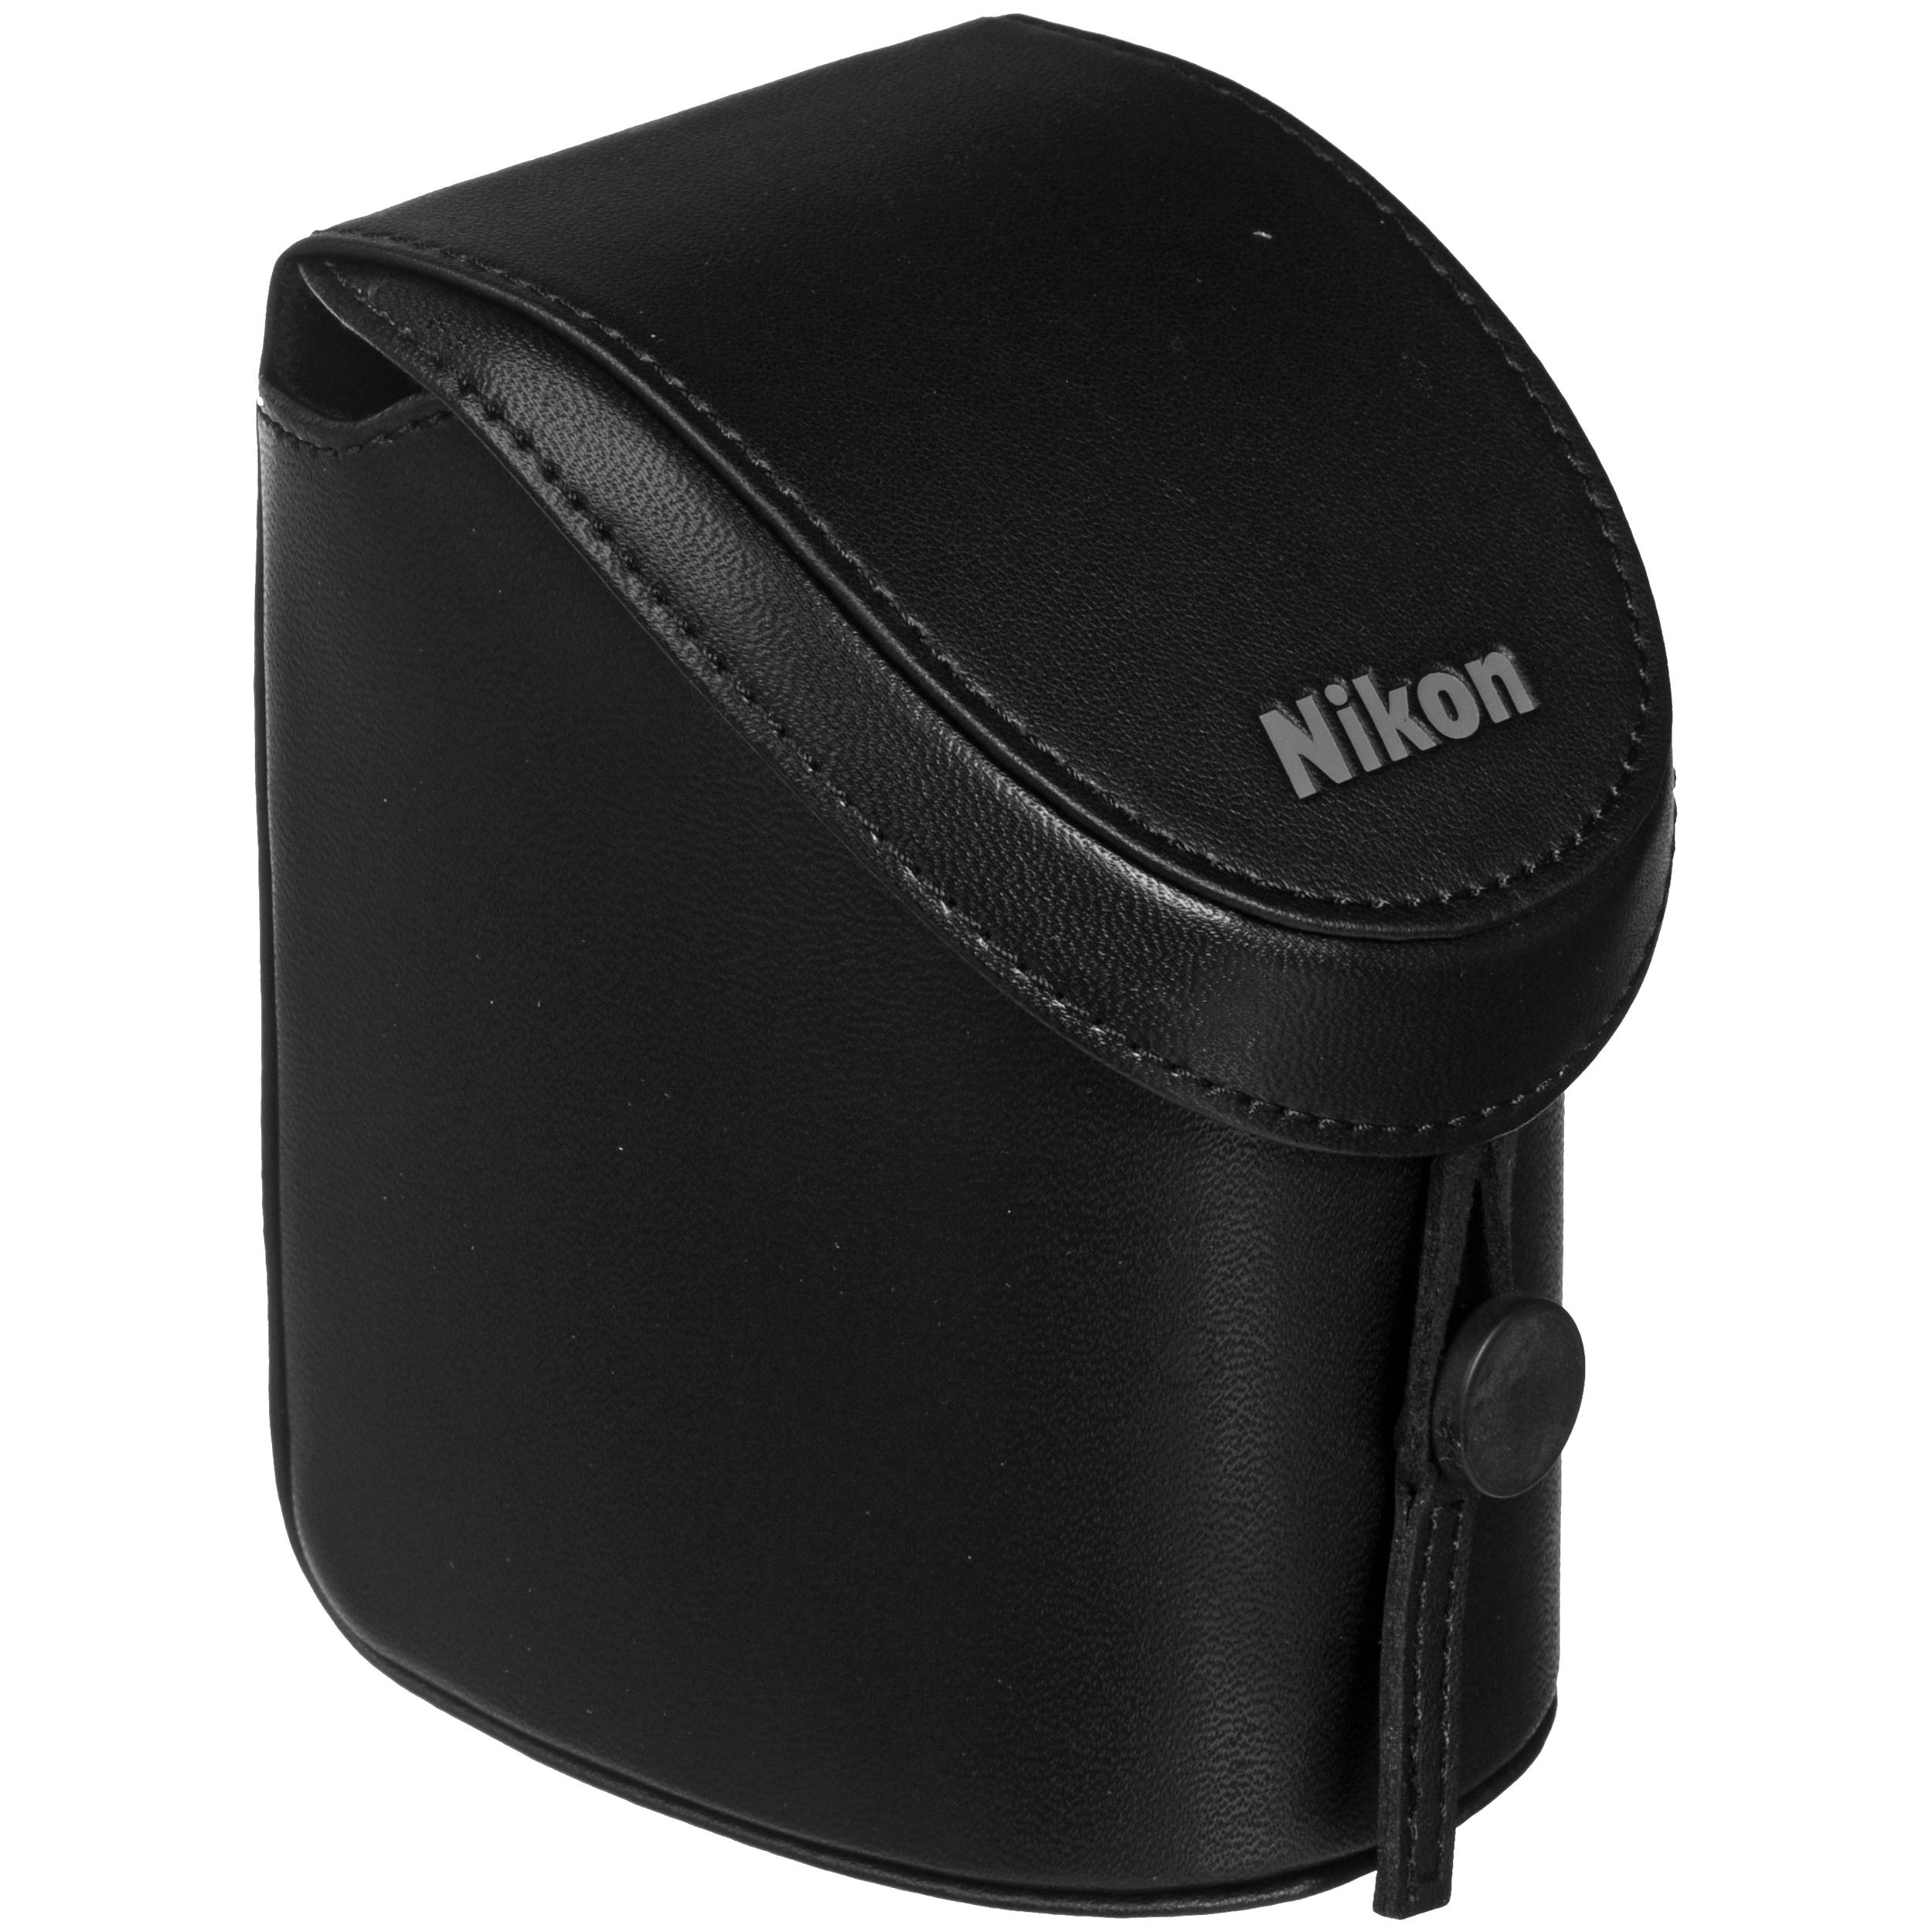 CF-N5000 Black custodia semi-soft Verticale per Nikon 1 S1, J2, J3 + 10-30mm